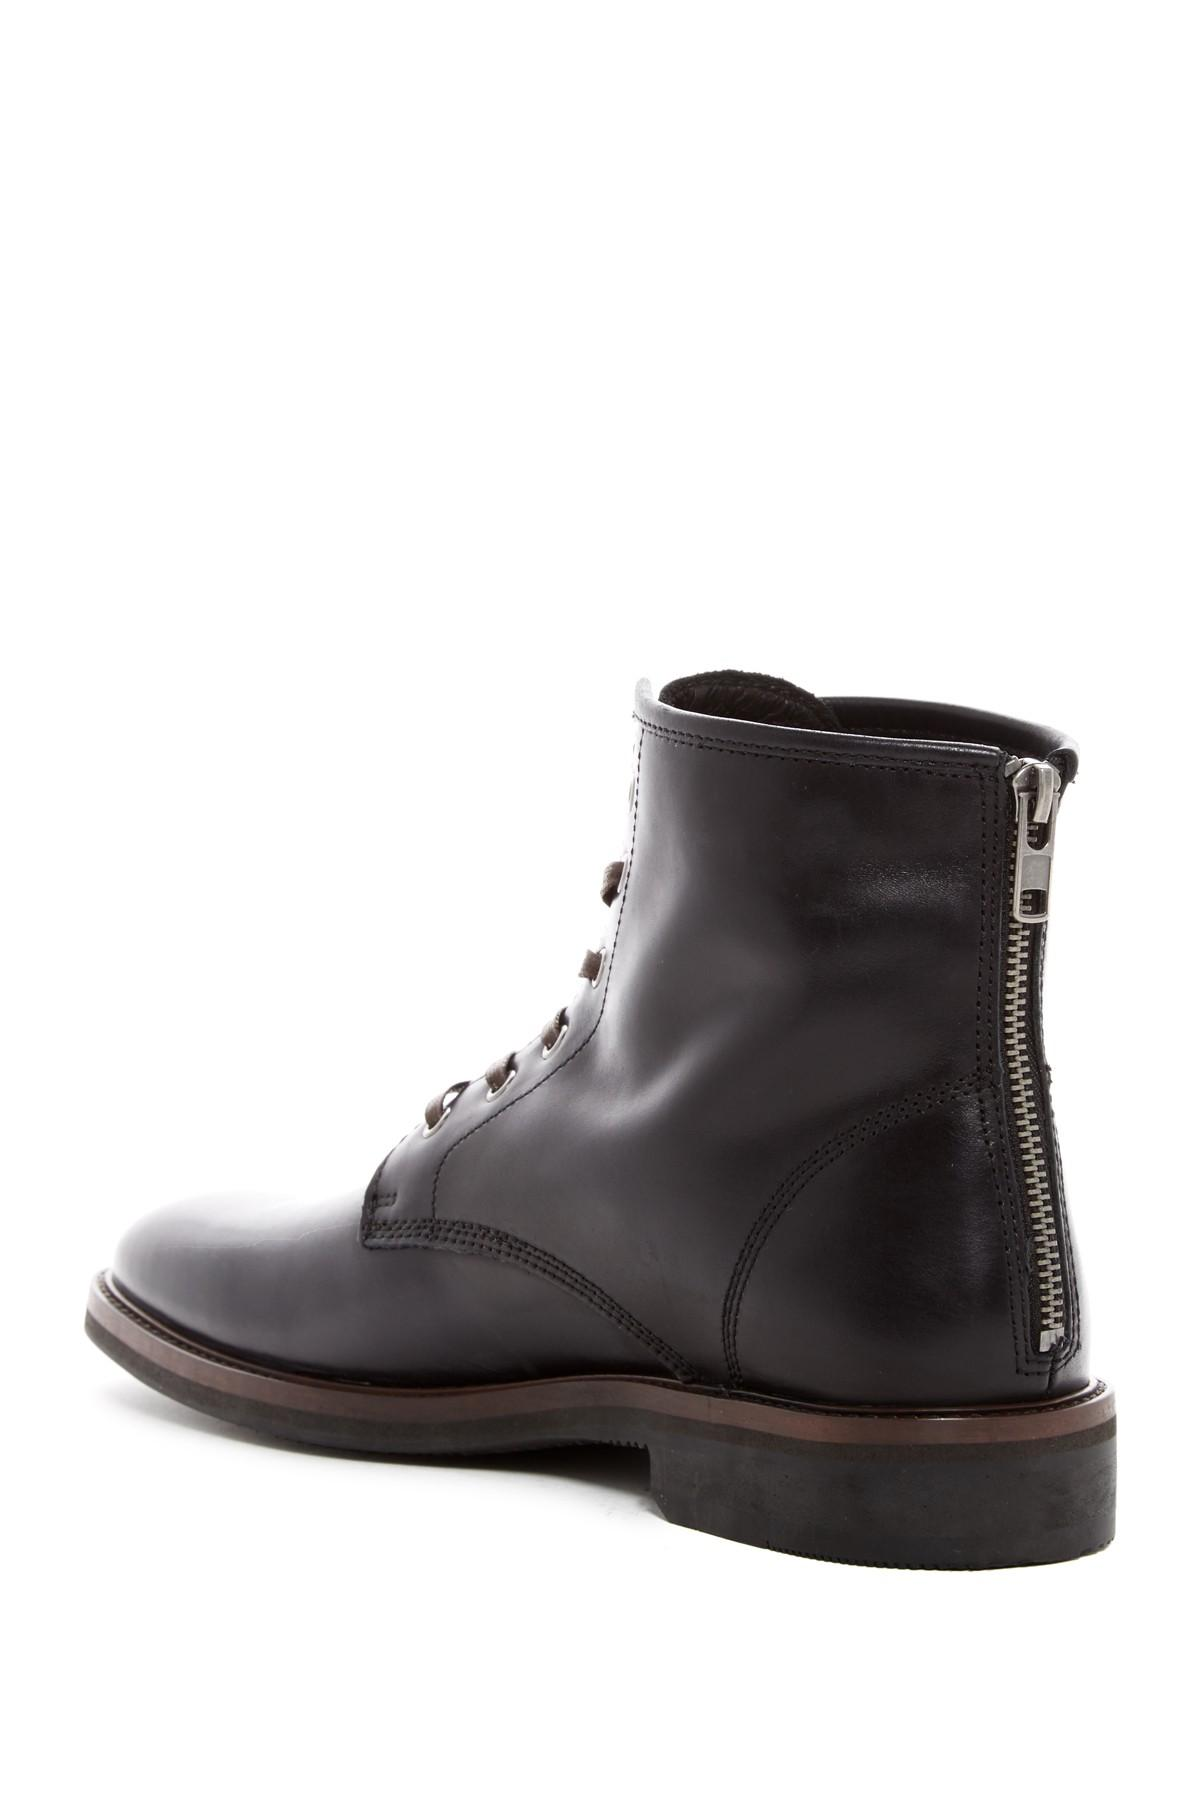 Wolfe Camper Sales >> Bacco Bucci Leather Wolfe Lace-up Boot in Black for Men - Lyst